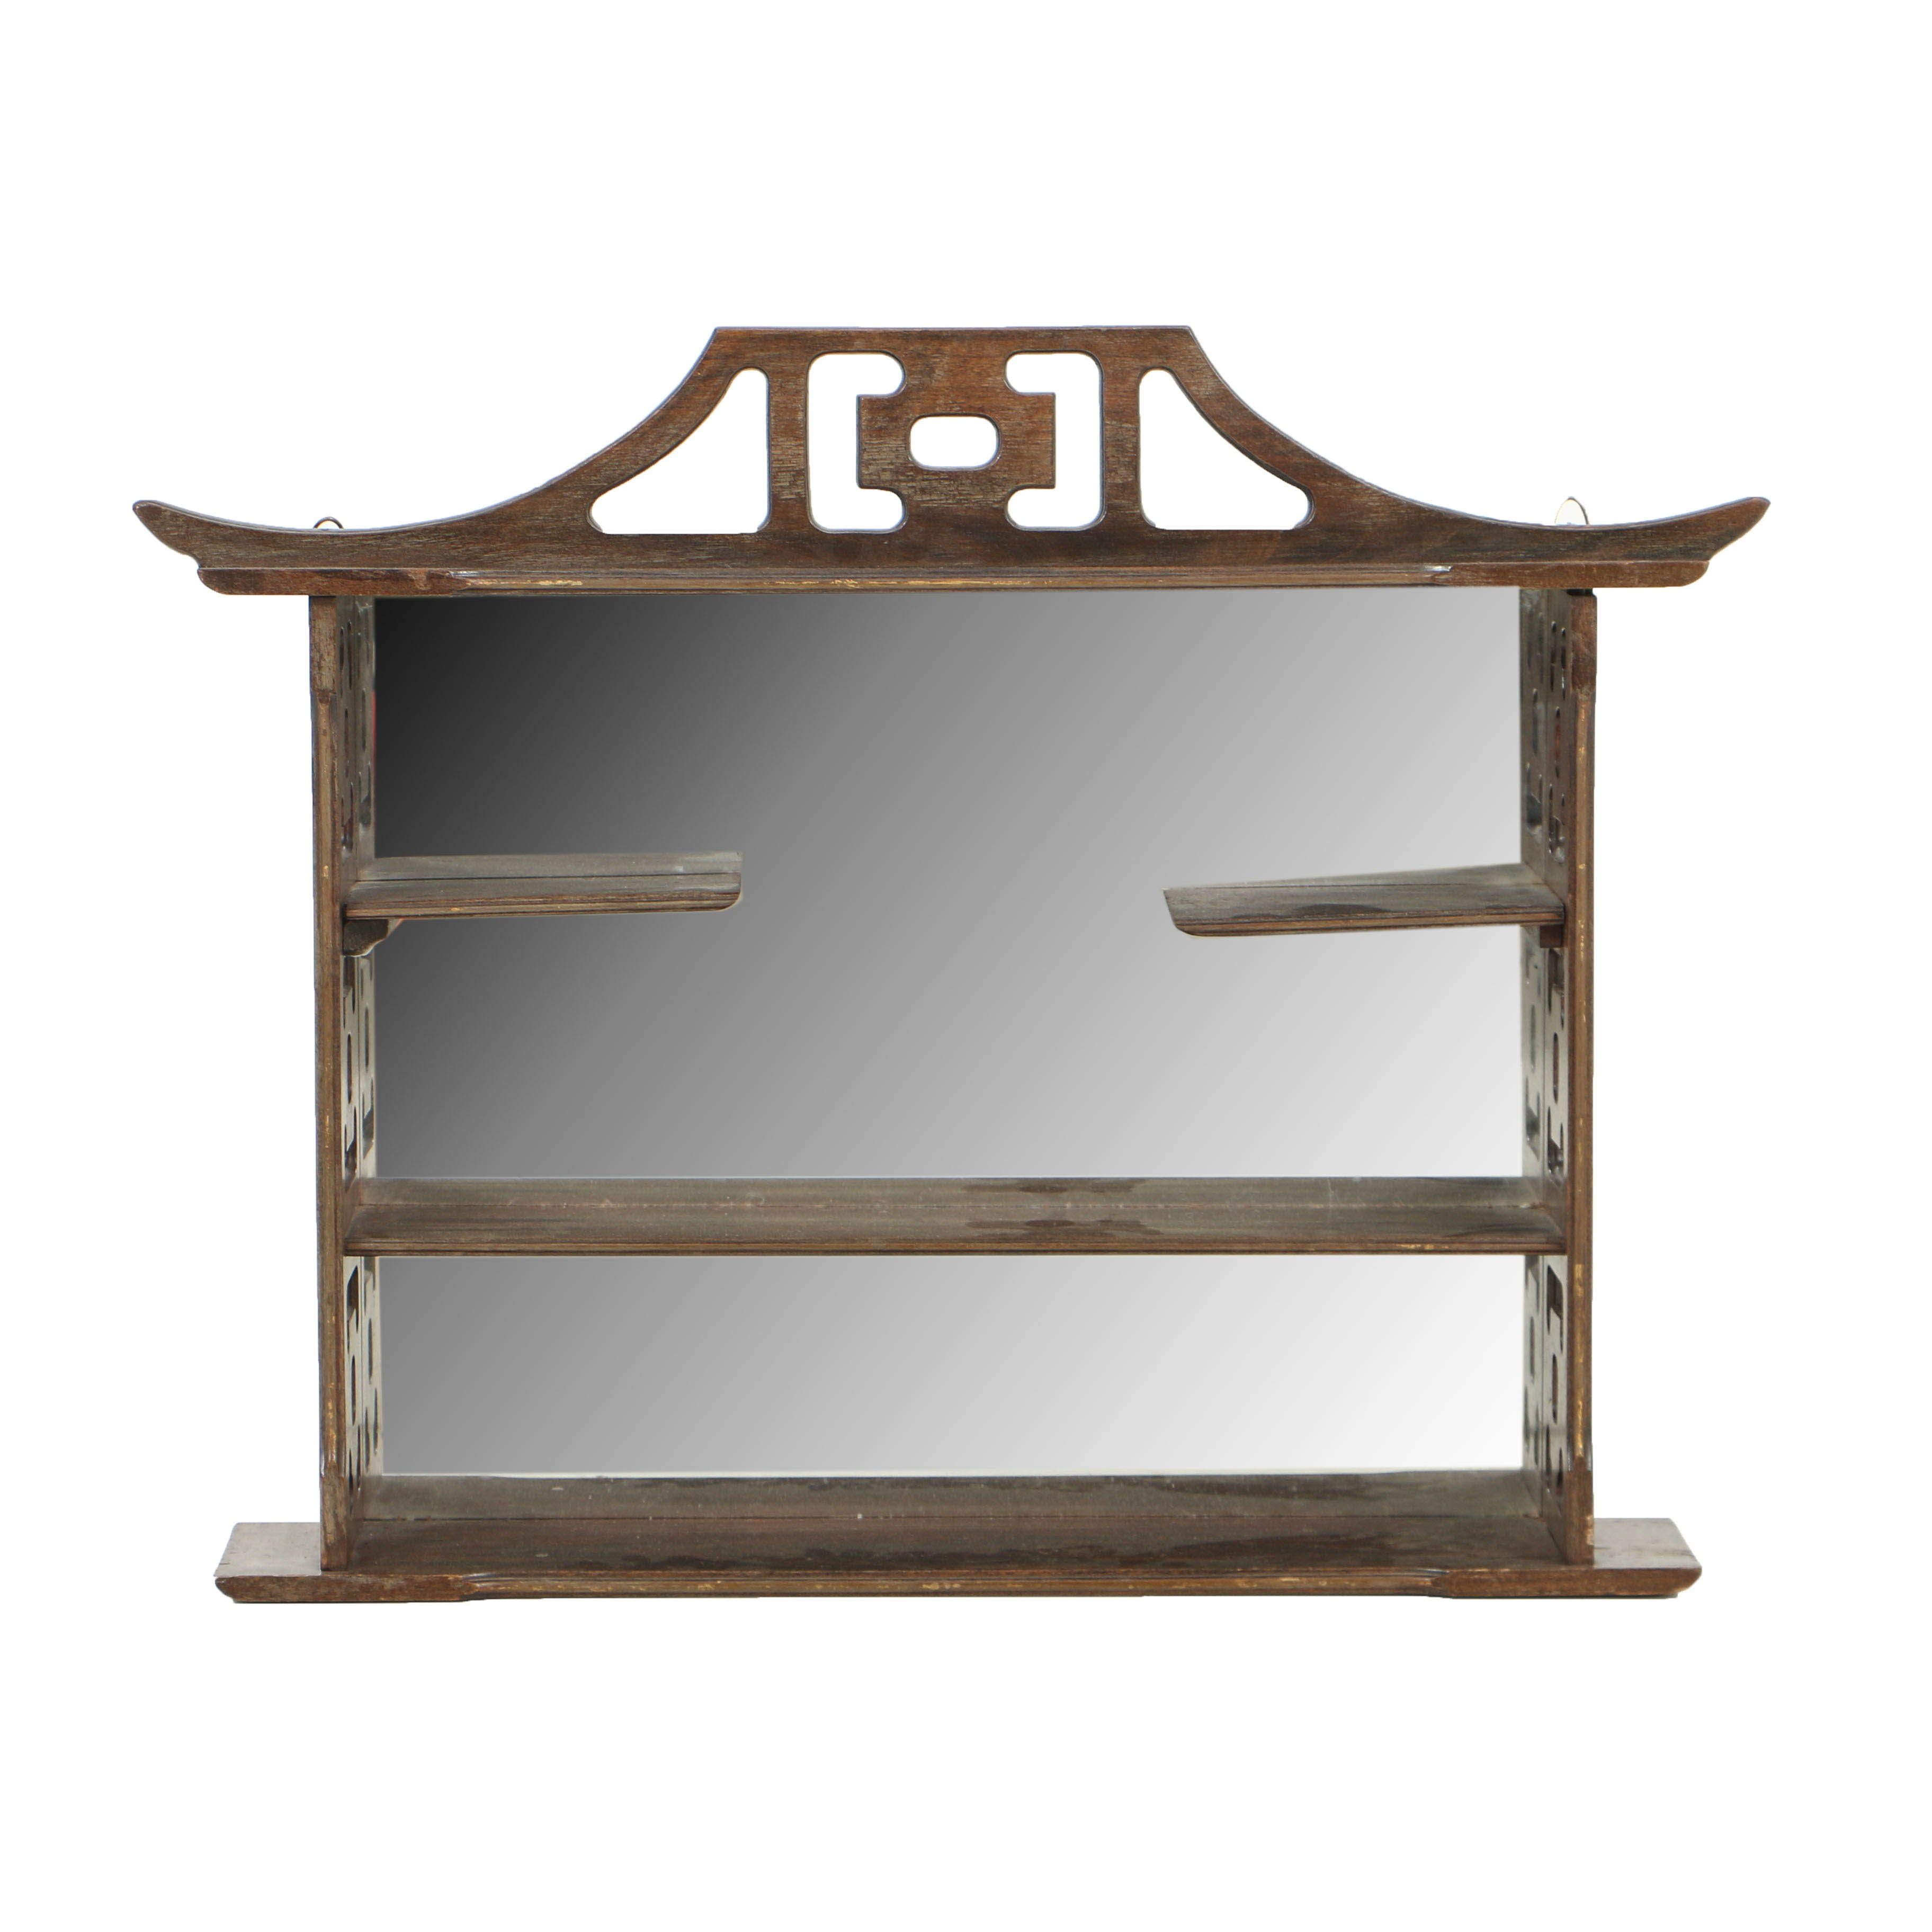 Vintage Asian-Inspired Hanging Curio Shelf with Mirrored Back